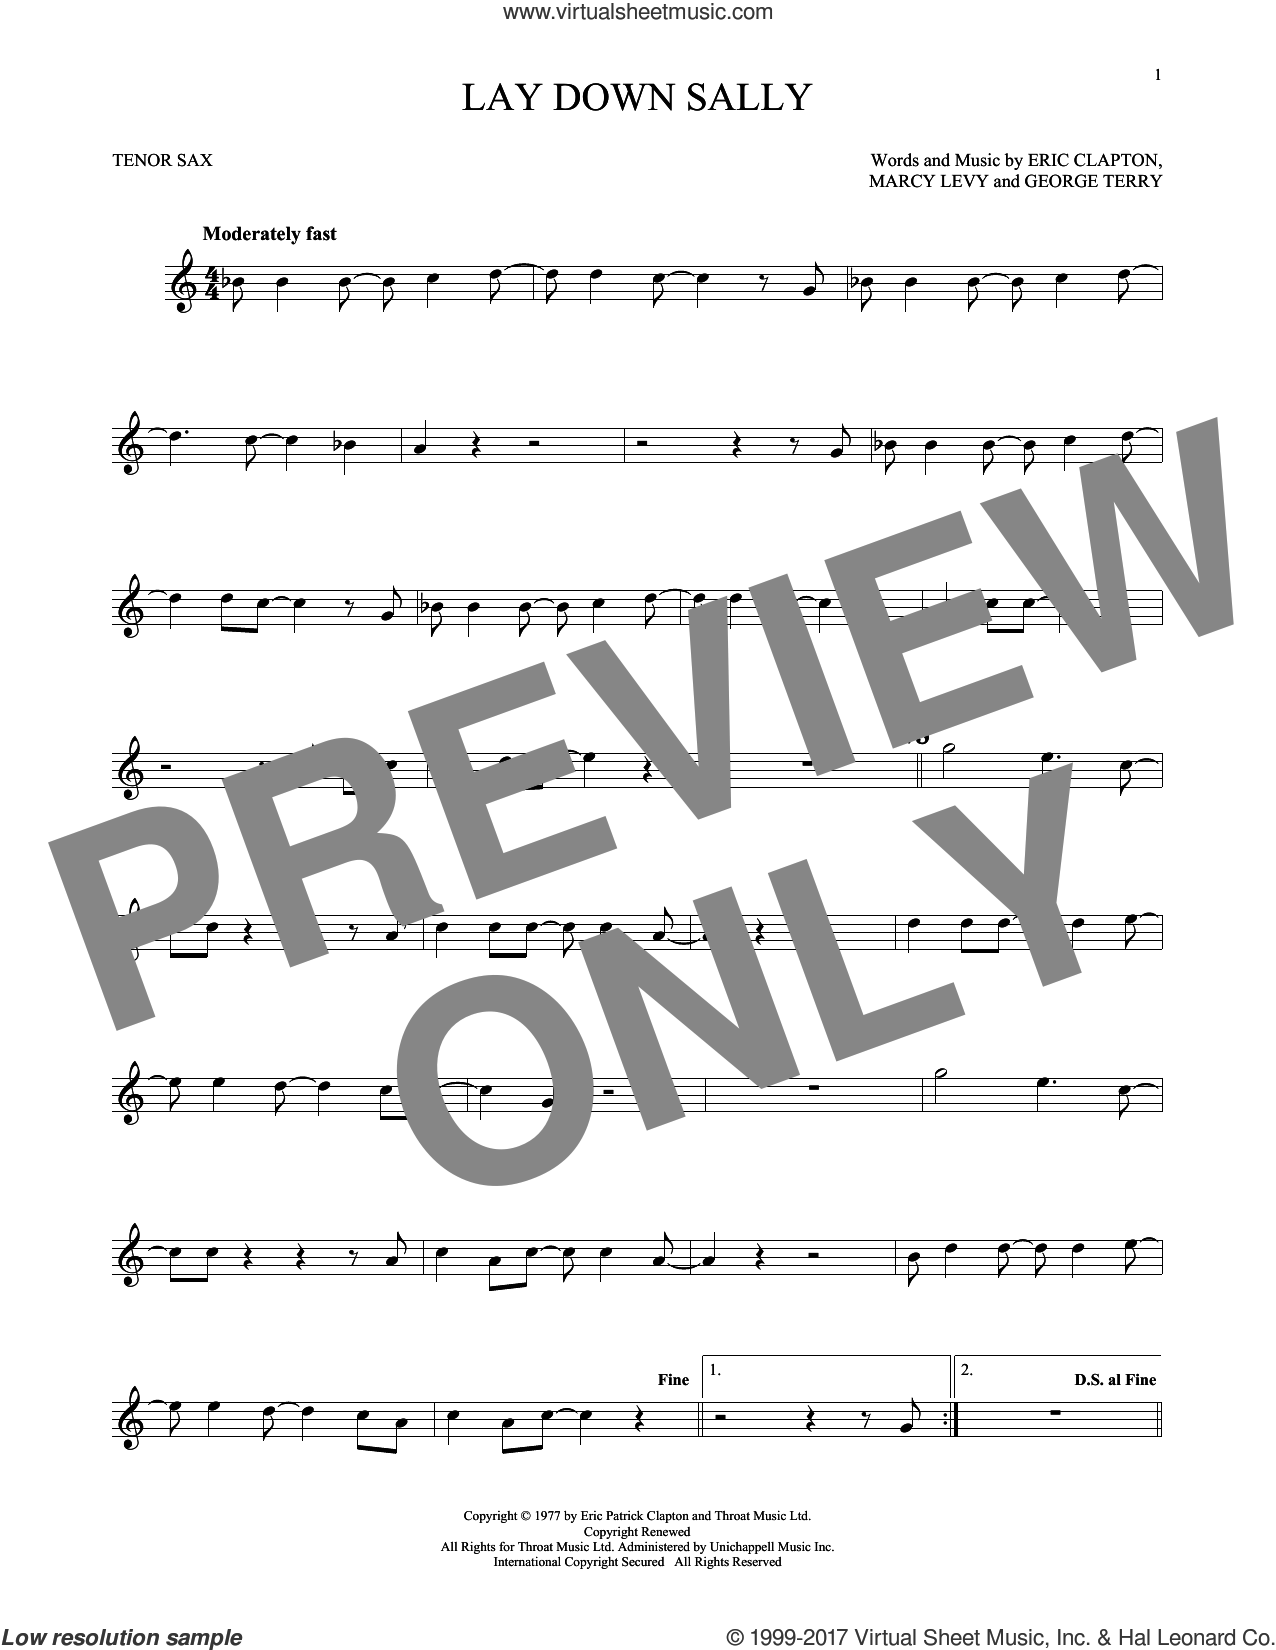 Lay Down Sally sheet music for tenor saxophone solo ( Sax) by Marcy Levy, Eric Clapton and George Terry. Score Image Preview.